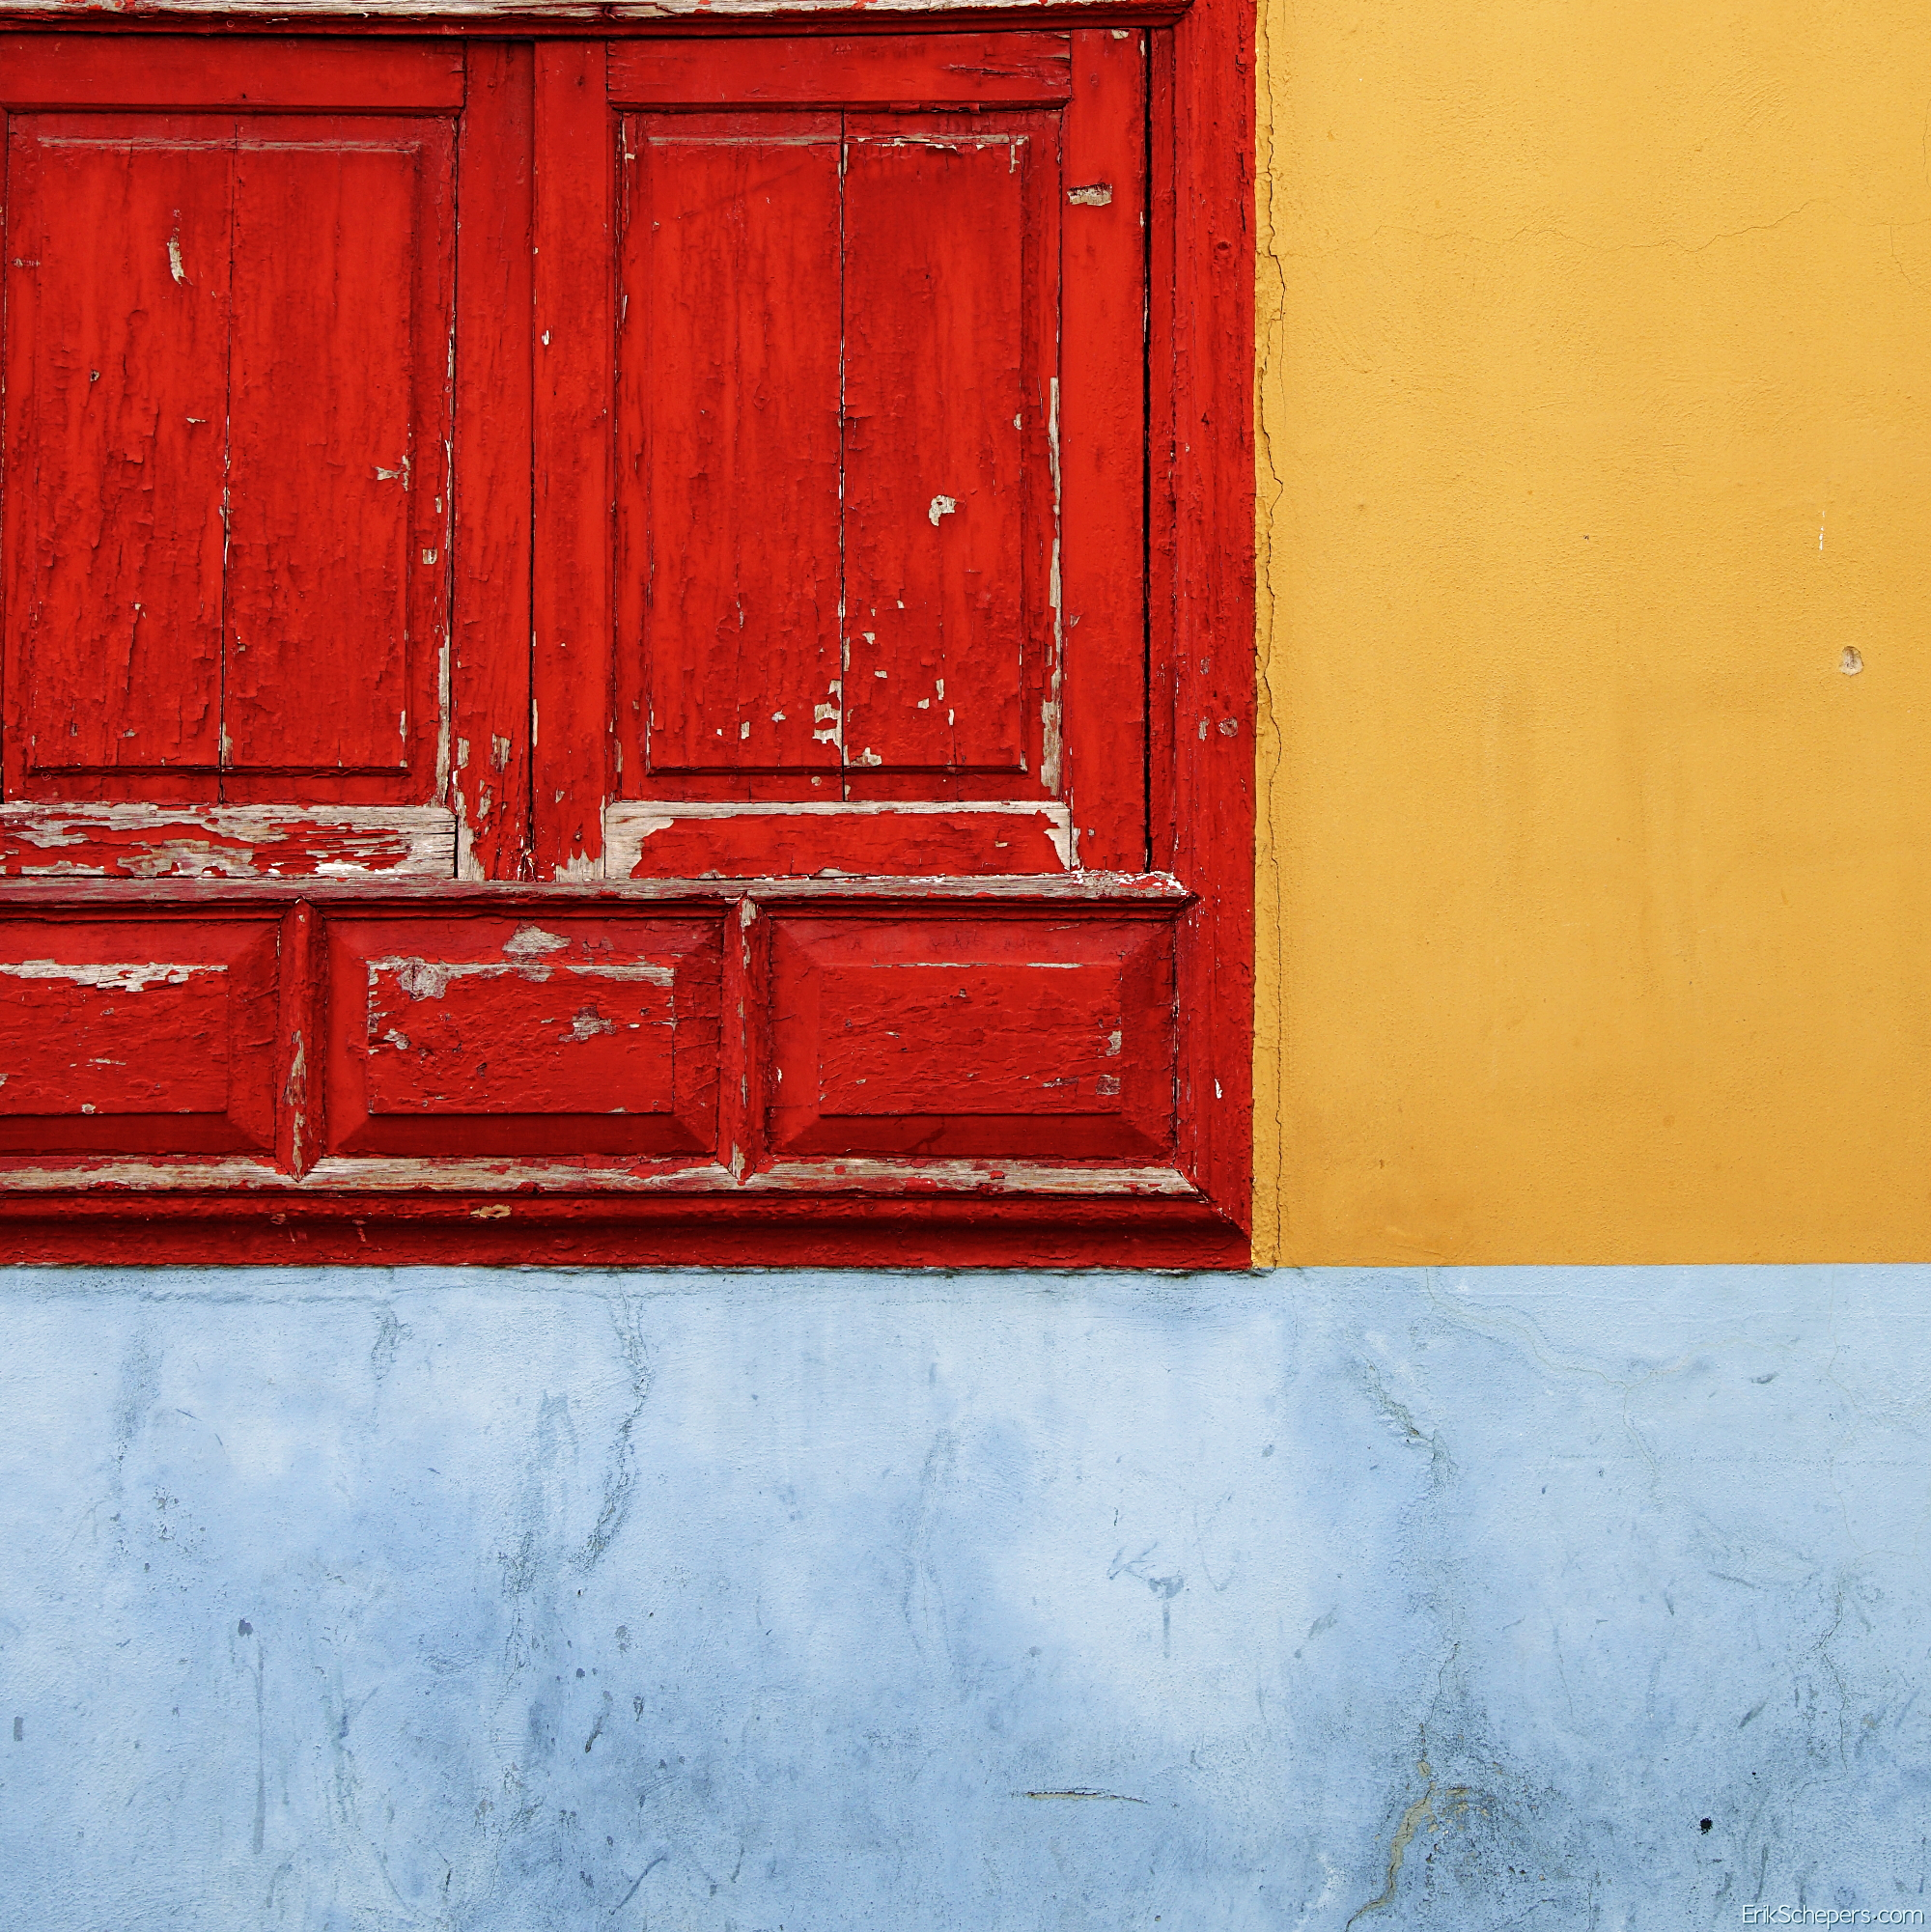 Tenerife: Colour and Composition